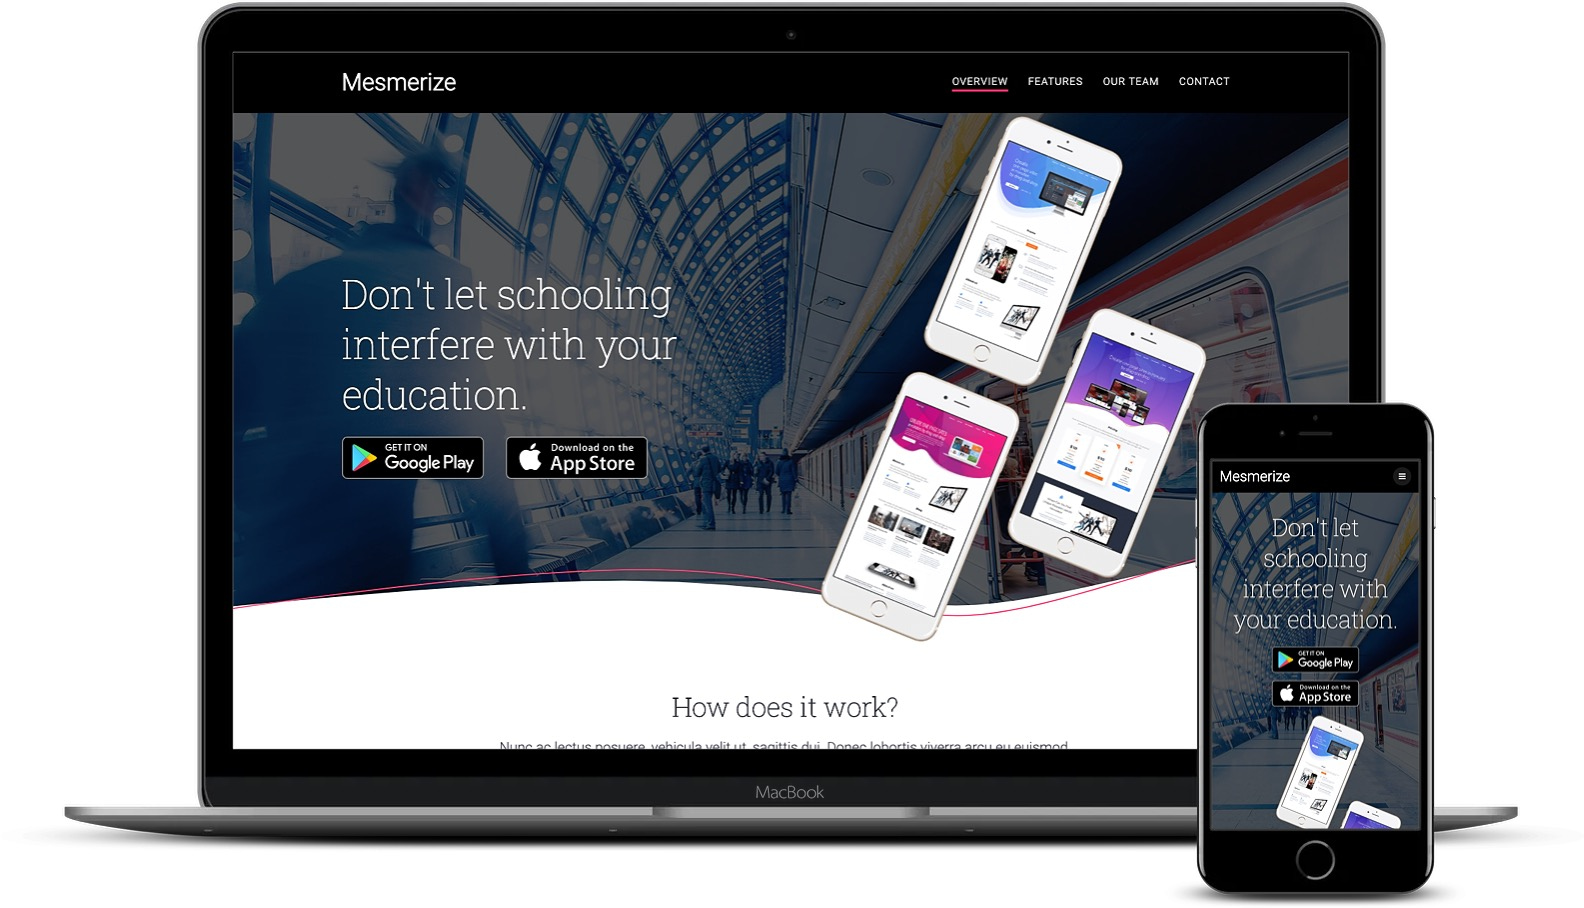 Mesmerize on desktop and mobile